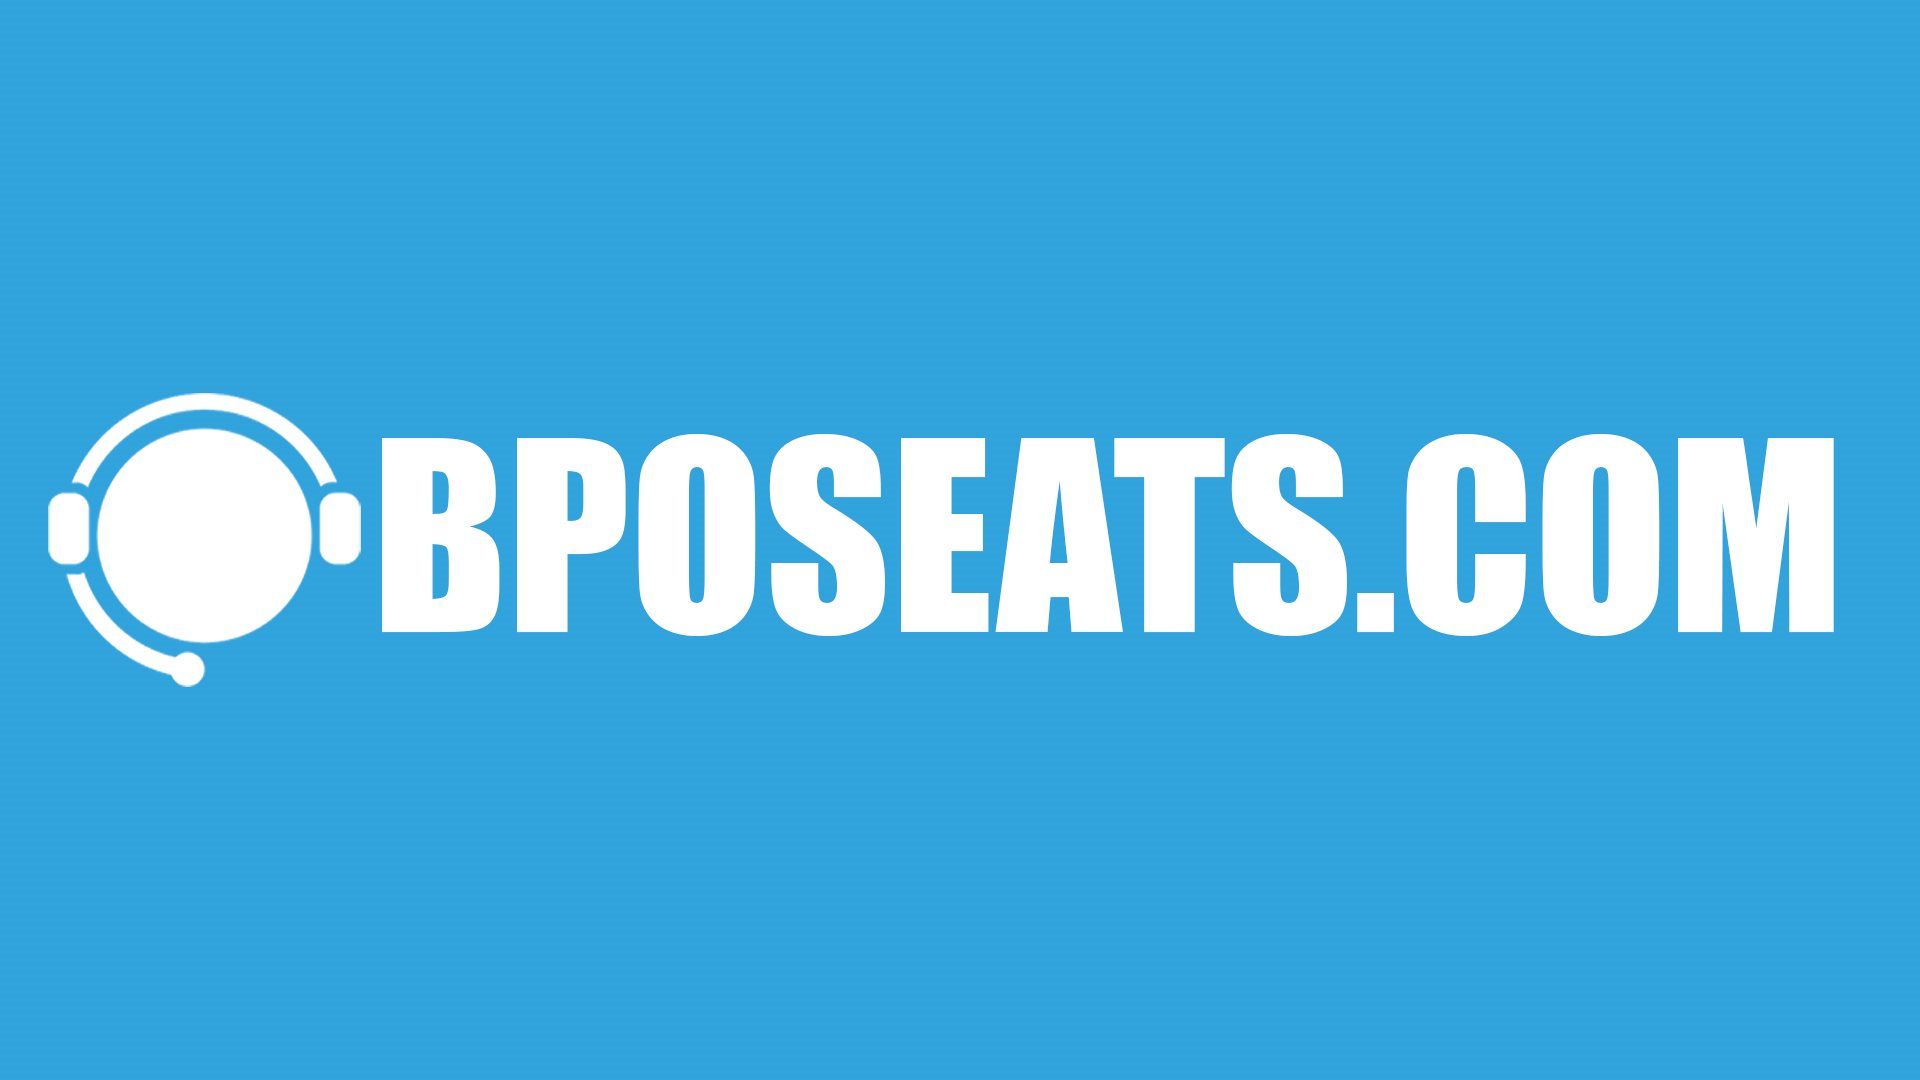 BPOSeats.com: A Reliable and Knowledgeable Seat Leasing Partner